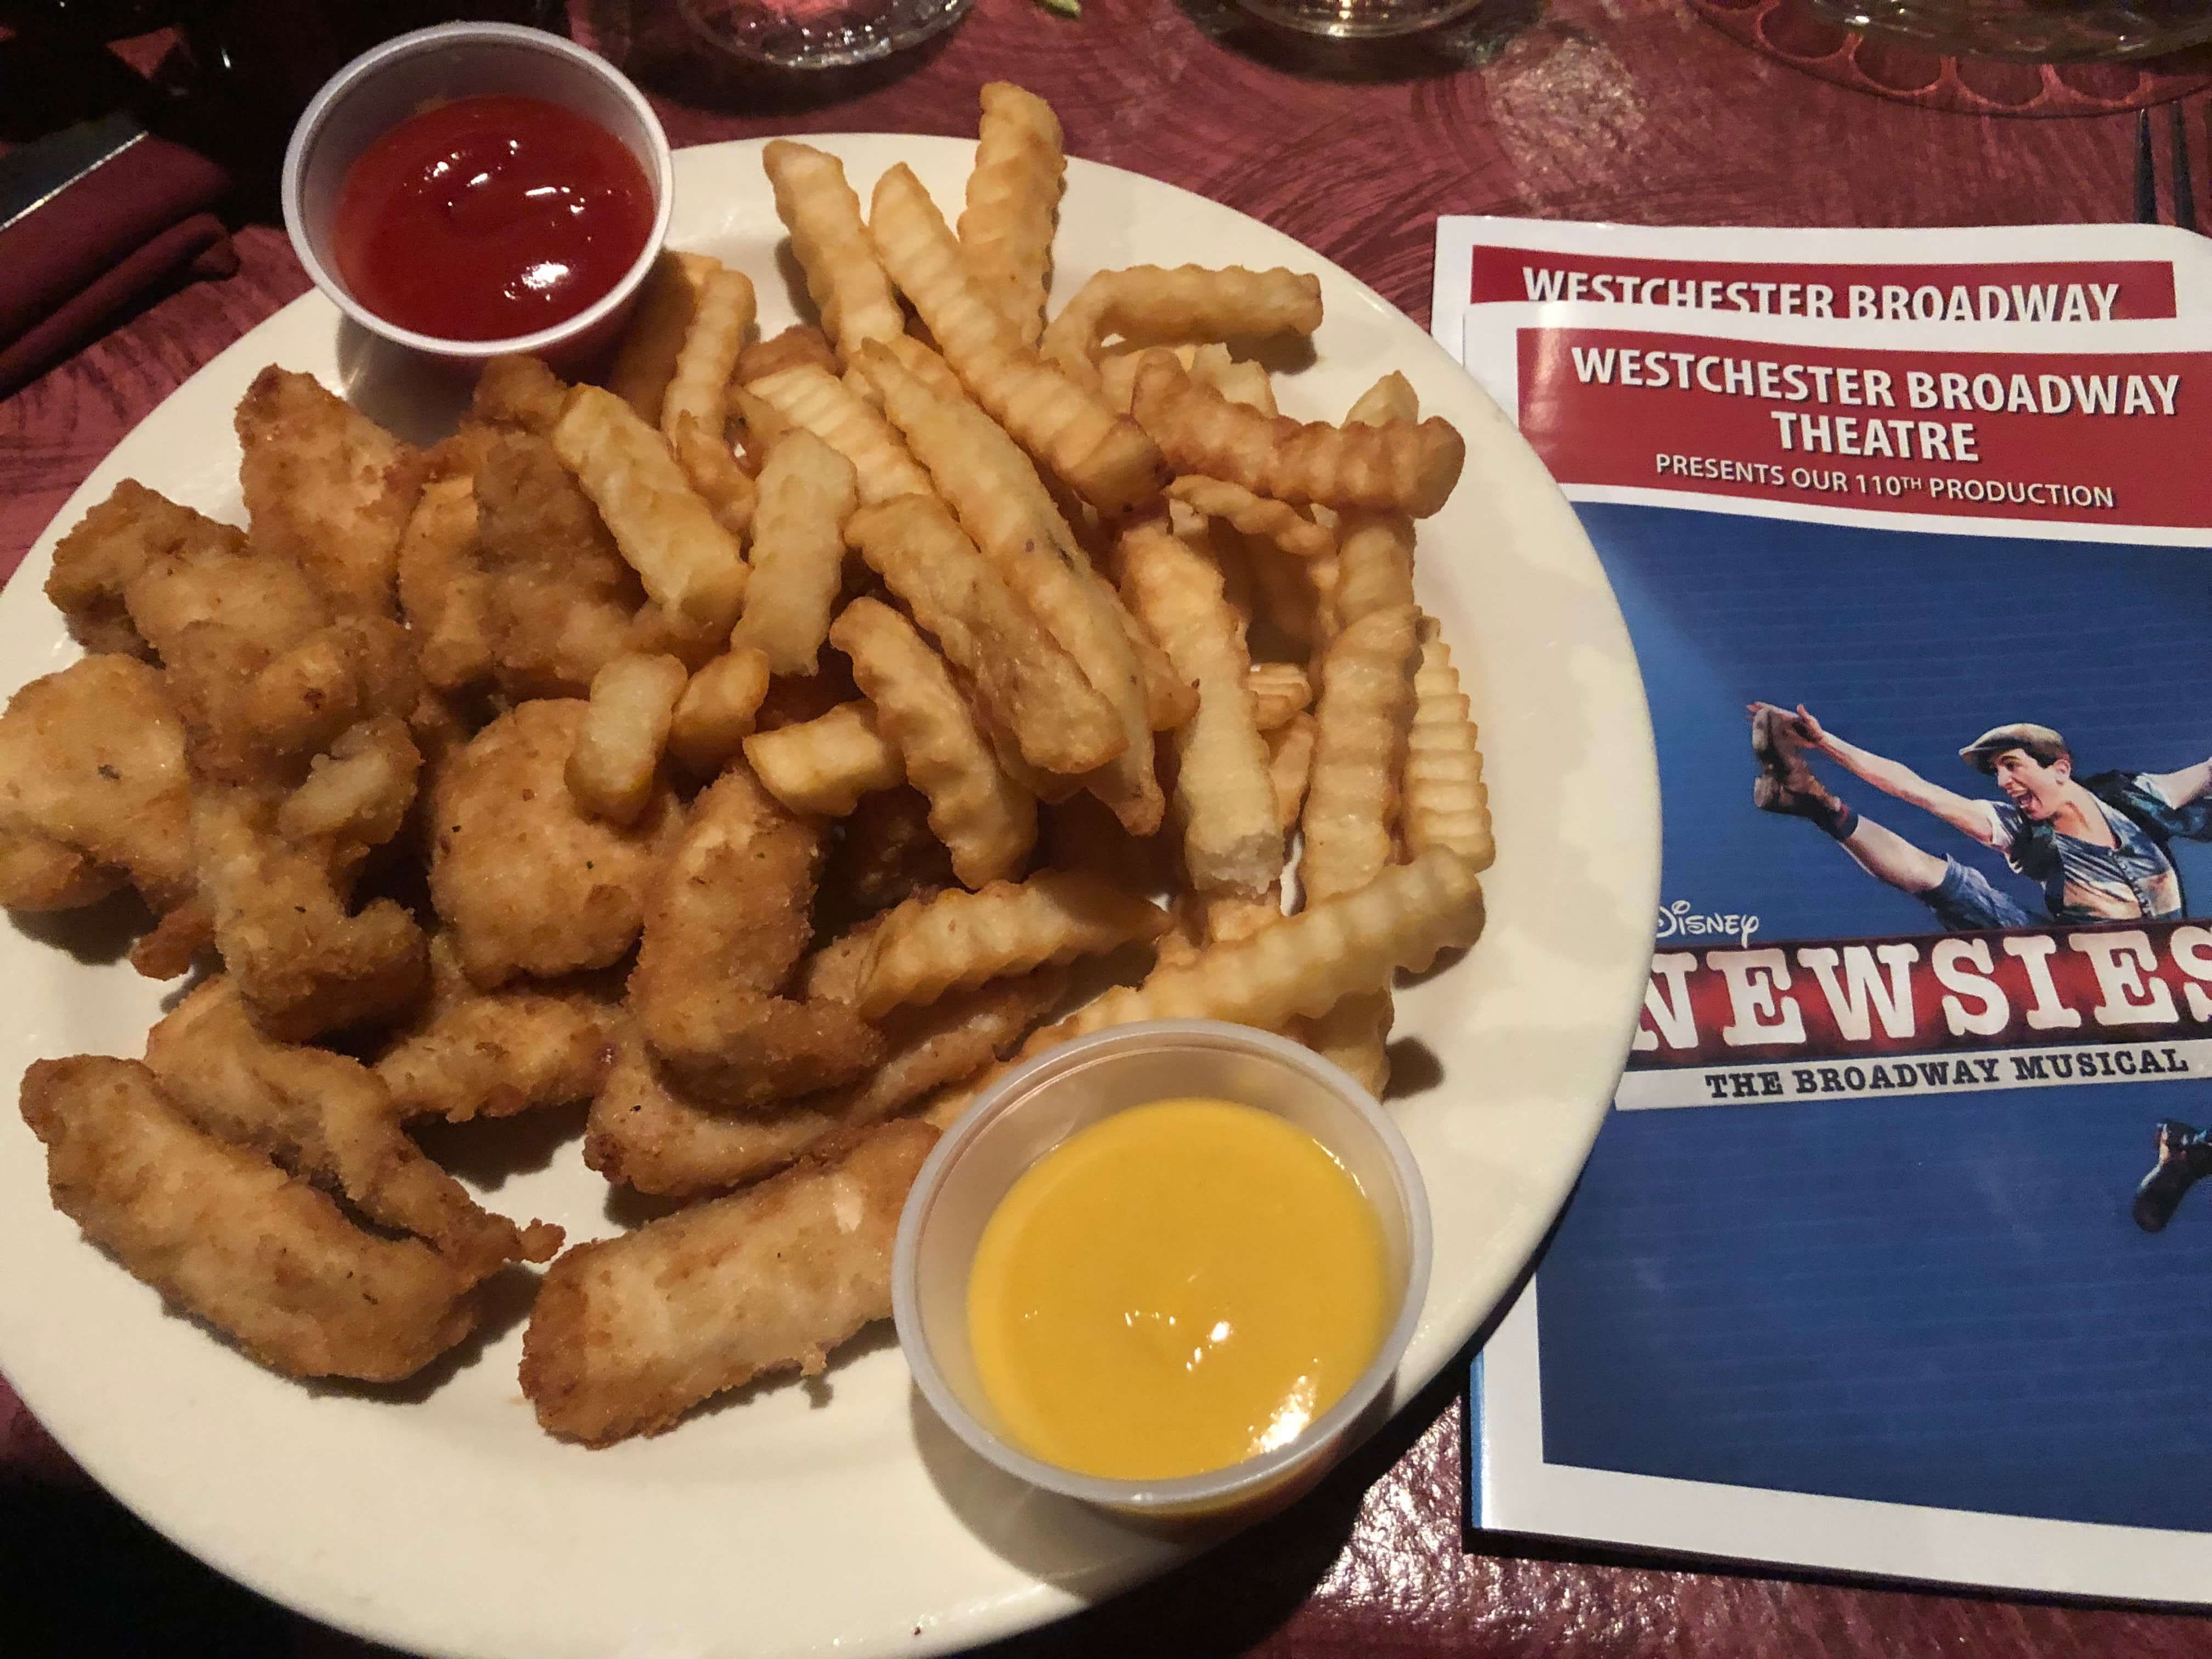 chicken fingers for kids at the WEstchester Broadway Theater